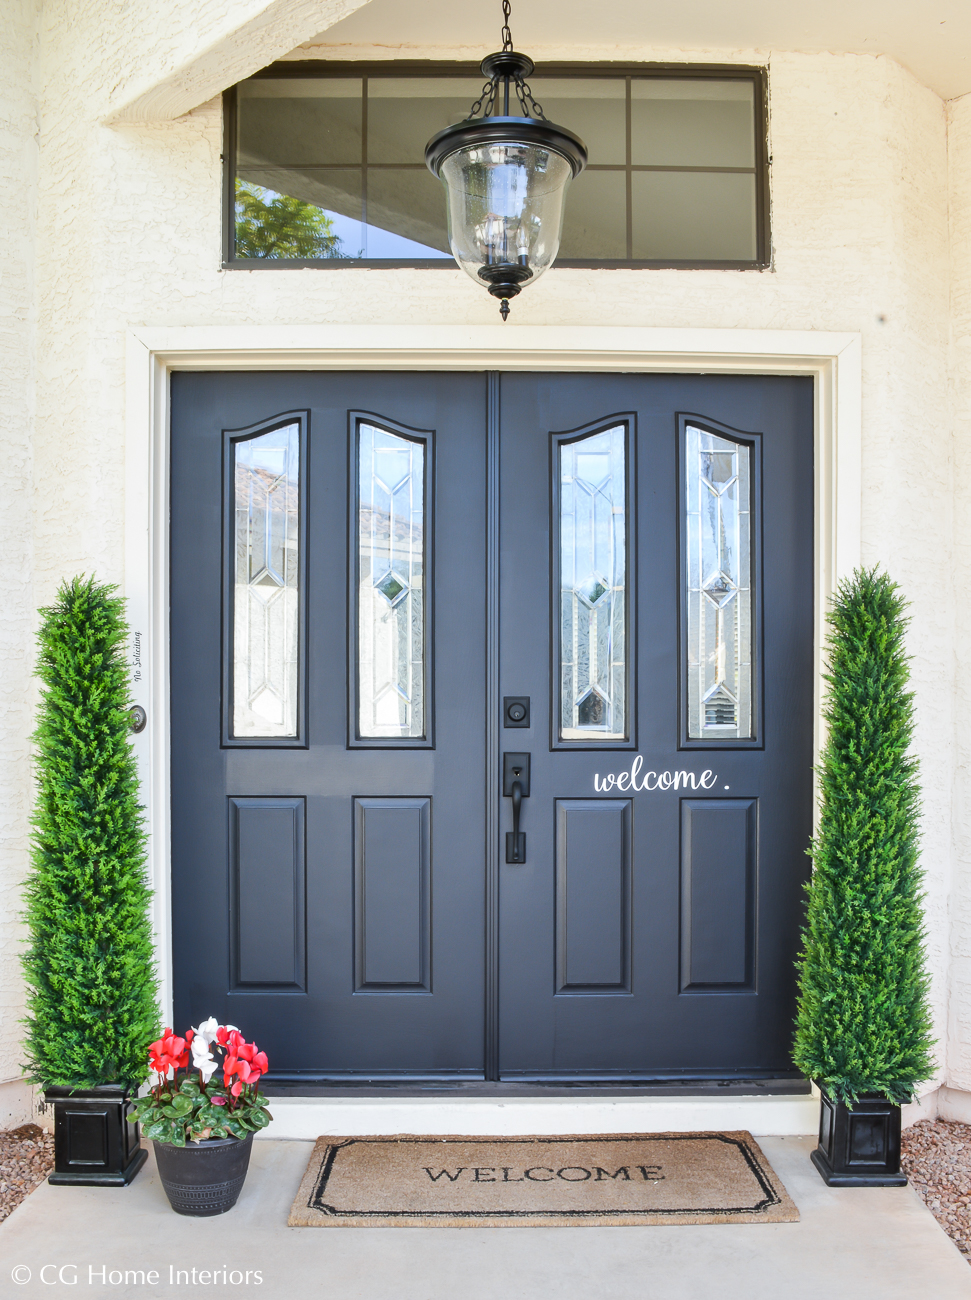 My Interior and Exterior Paint Colors, Sherwin Williams, Behr, Tricorn Black